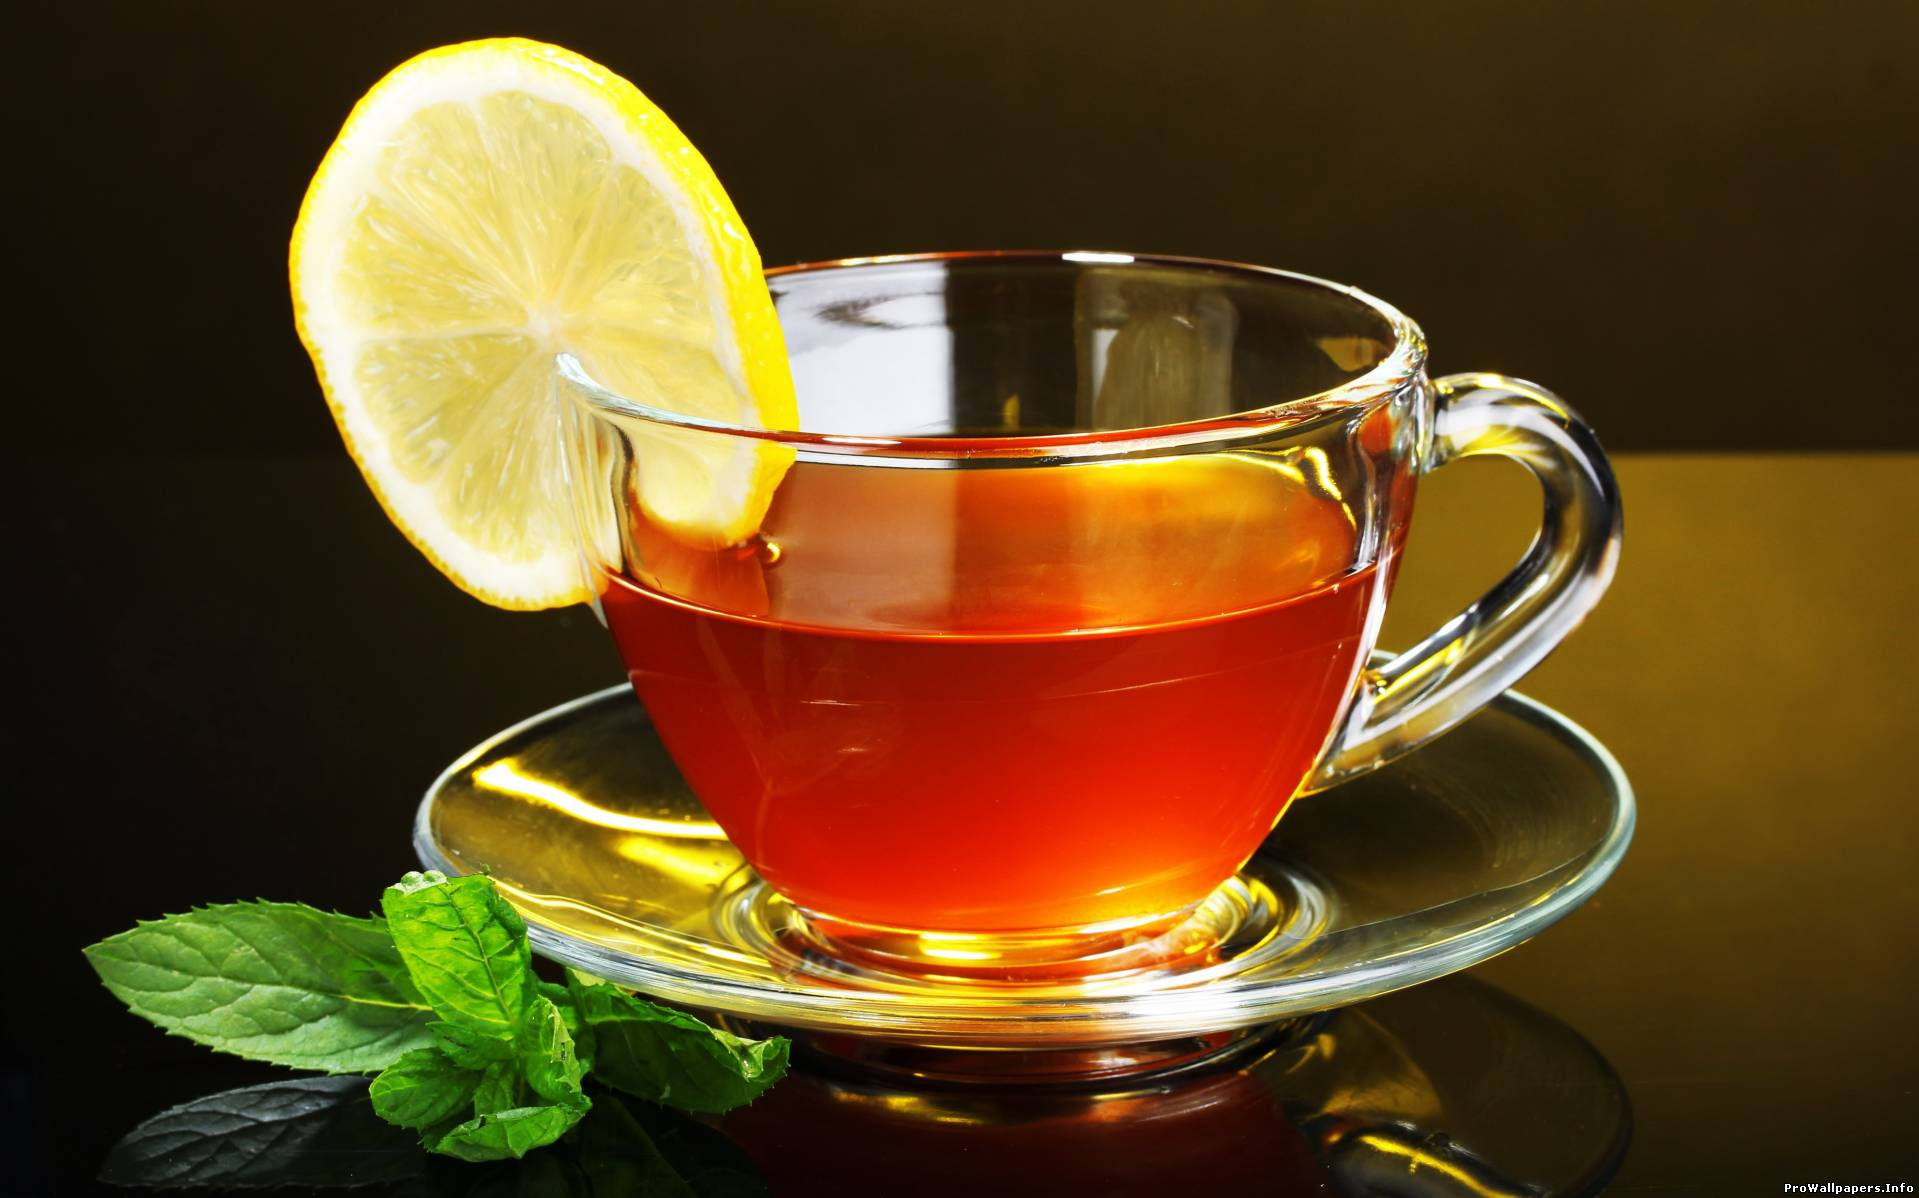 Cup of Tea - Health Benefits